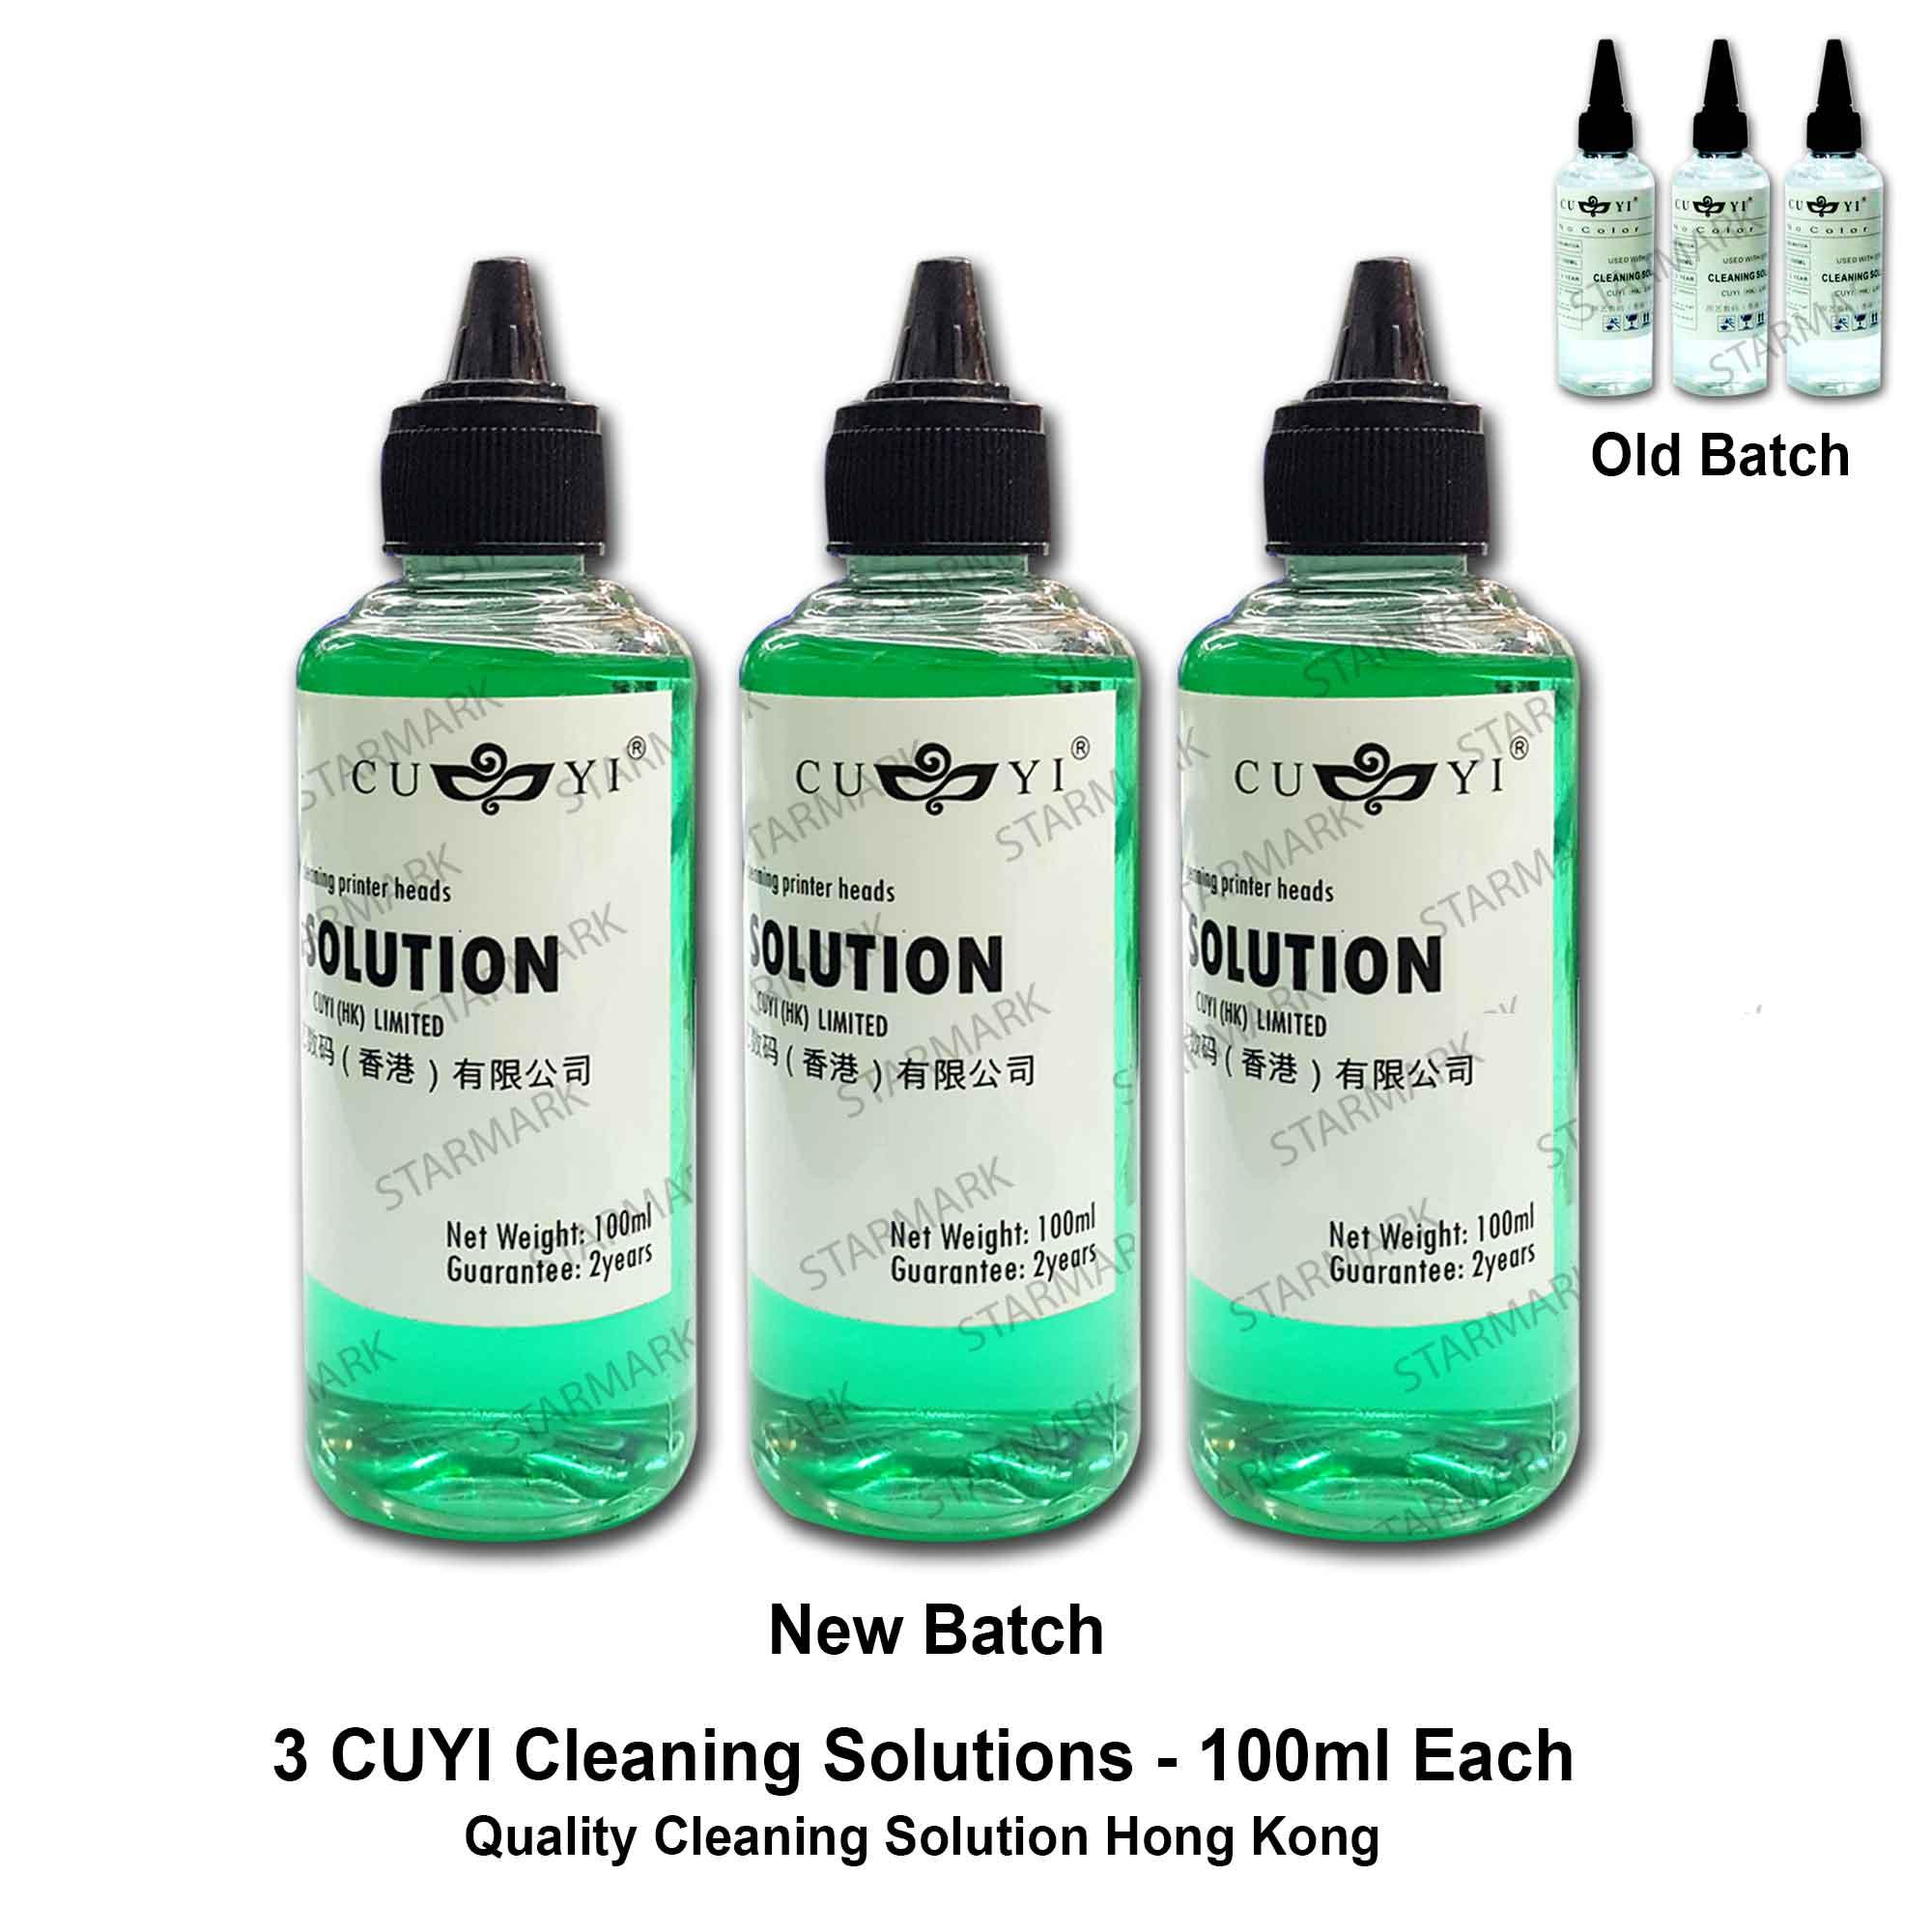 3 Bottles Cuyi Print Head Cleaning Solution Hong Kong 100ml Each, For Epson, Canon, Hp, Brother Printers - Clear By Starmark Enterprises